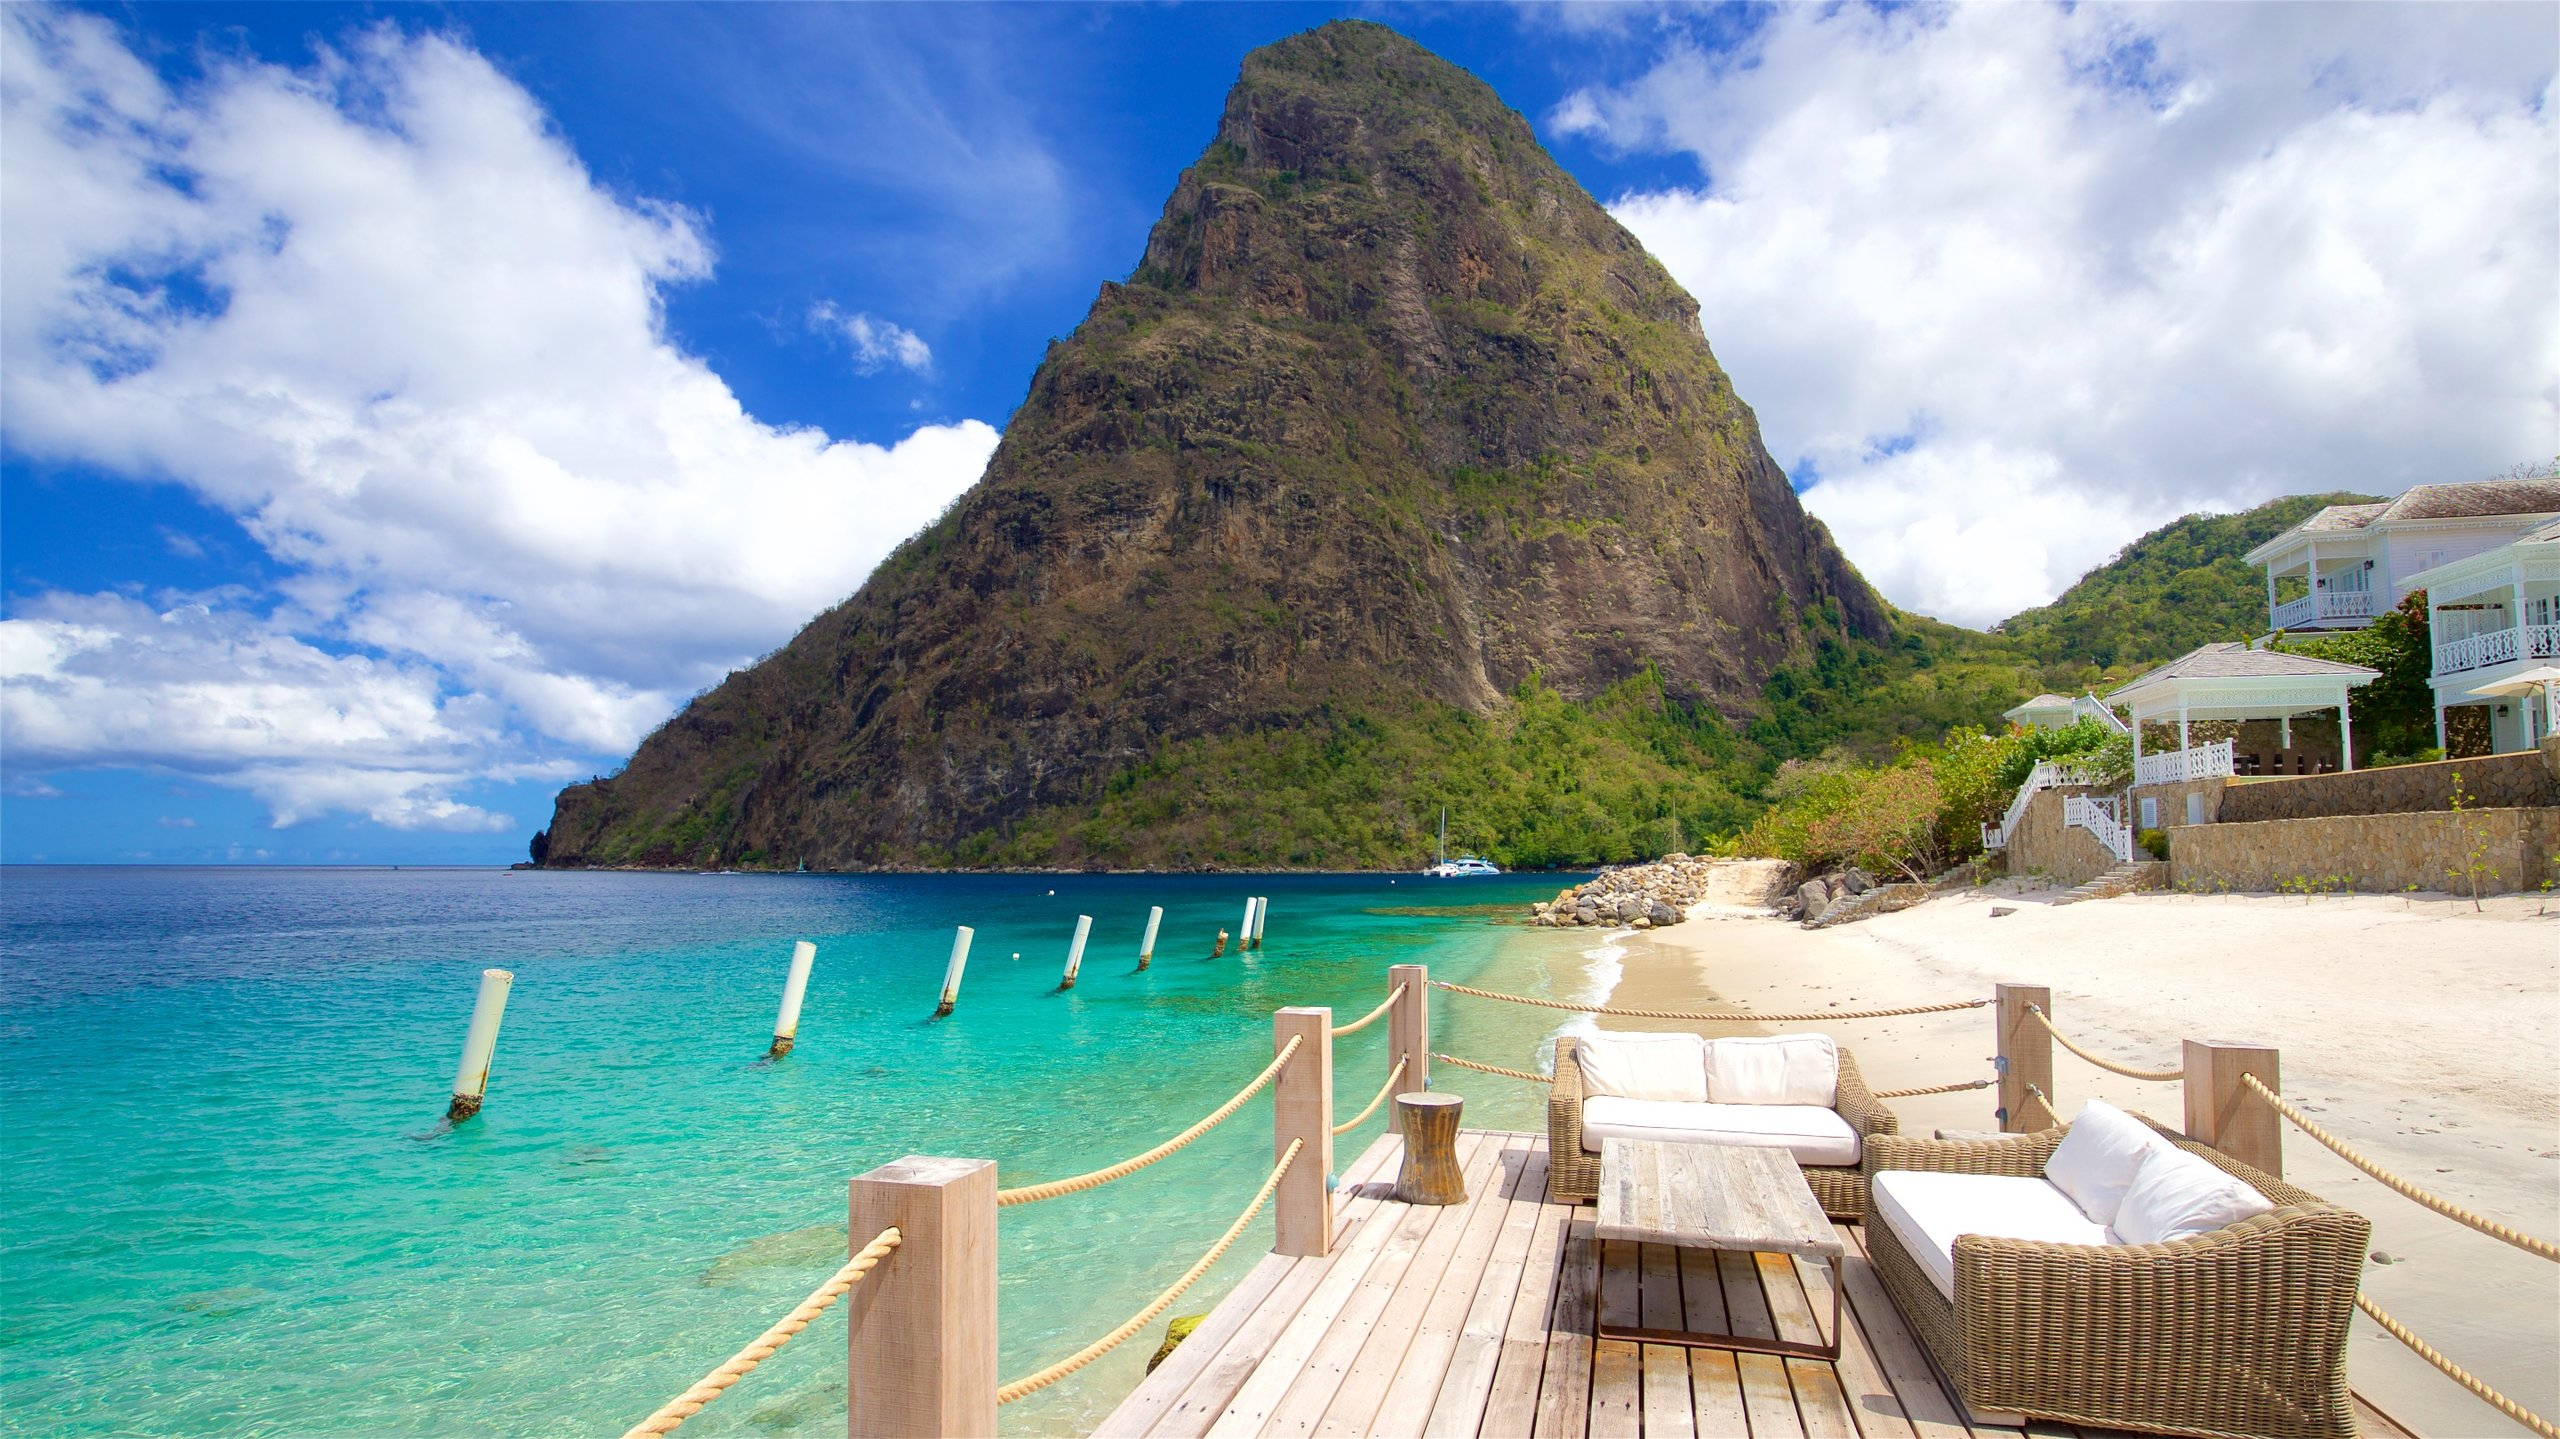 St. Lucia All Inclusive Resorts & Hotels For Vacations In